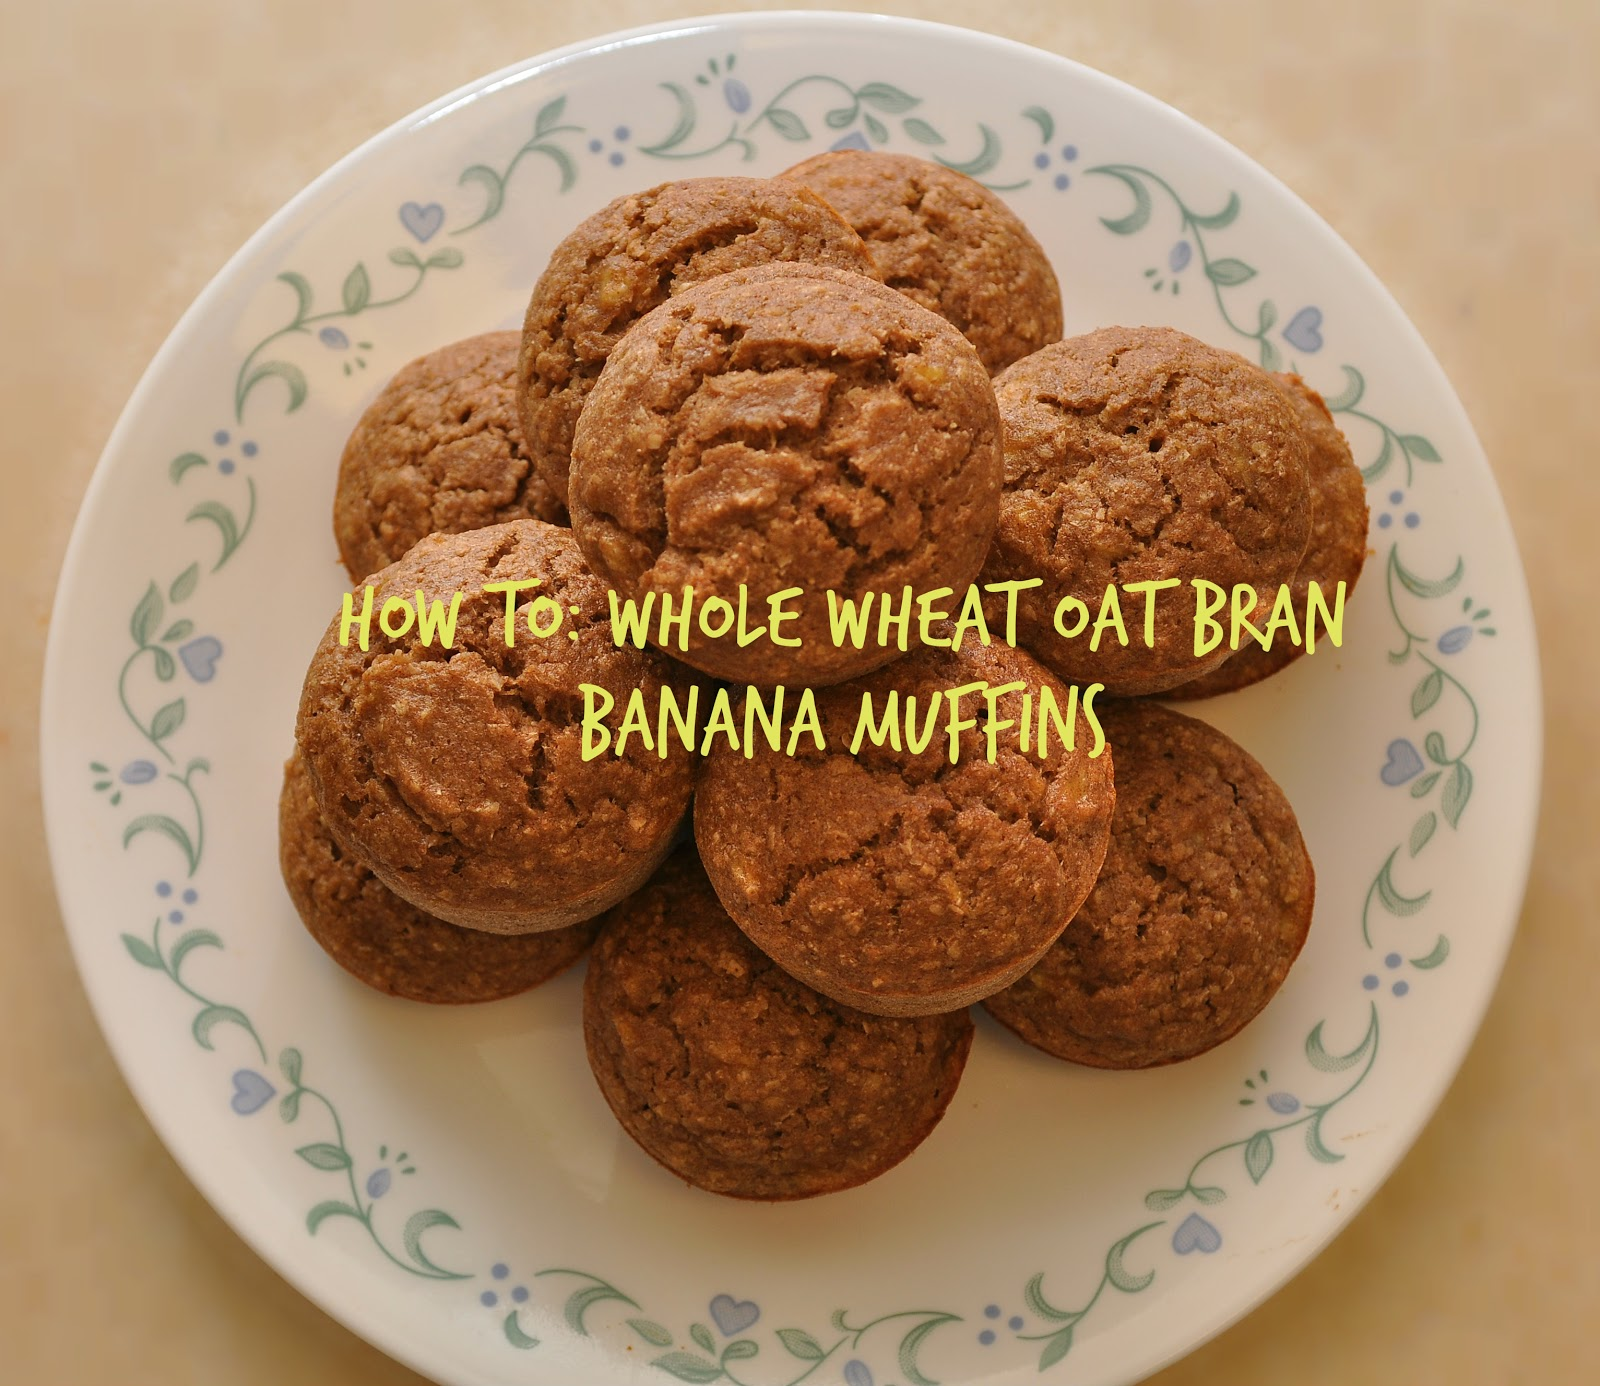 From Woo to You: Whole Wheat Oat Bran Banana Muffins